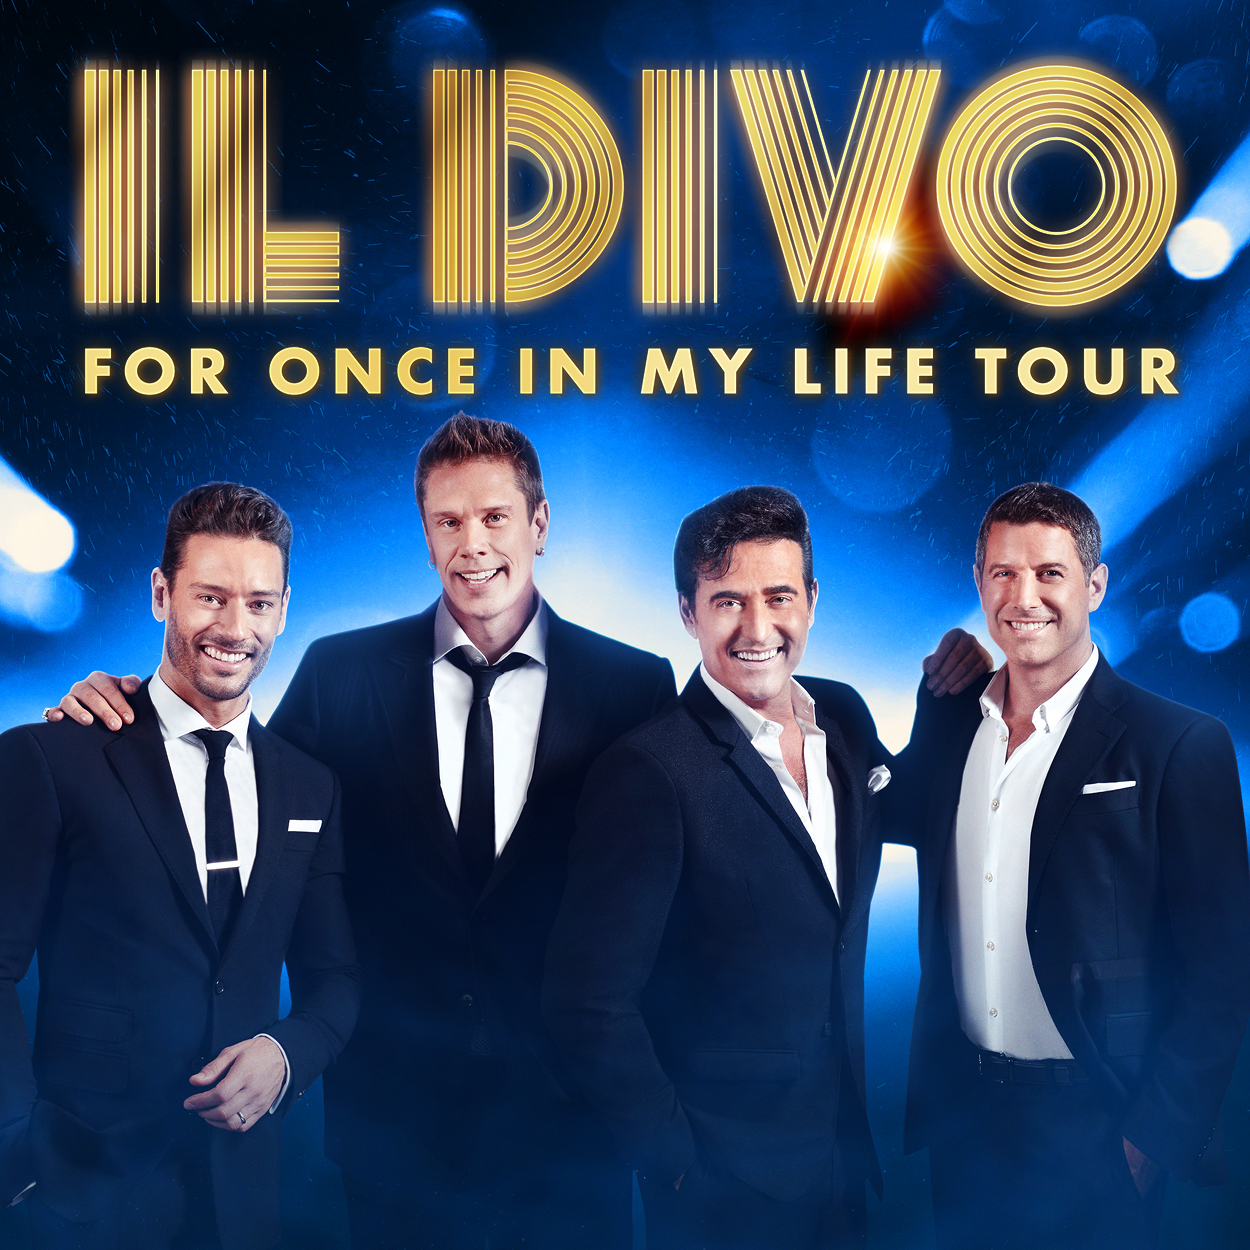 IL Divo – For Once in my Life Tour